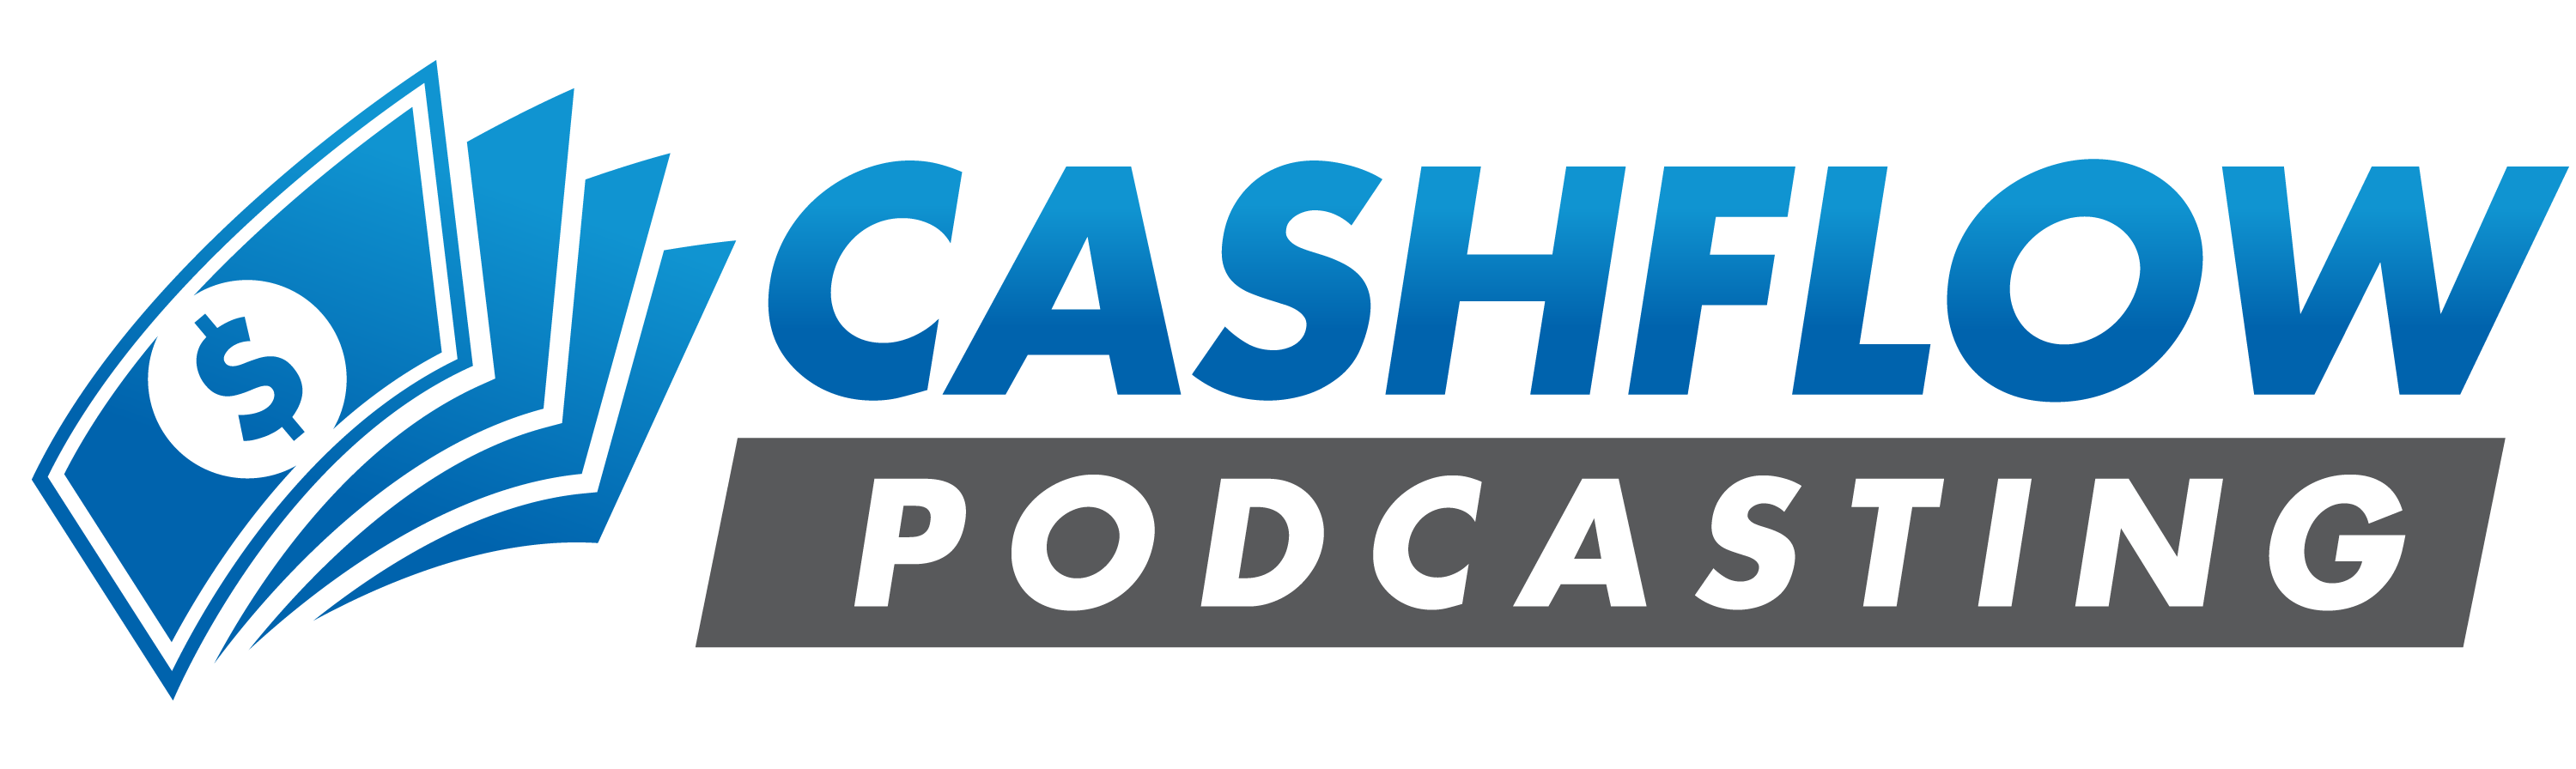 Cashflow Podcasting: Sales, Authority and Audience Growth Through Podcast Marketing.